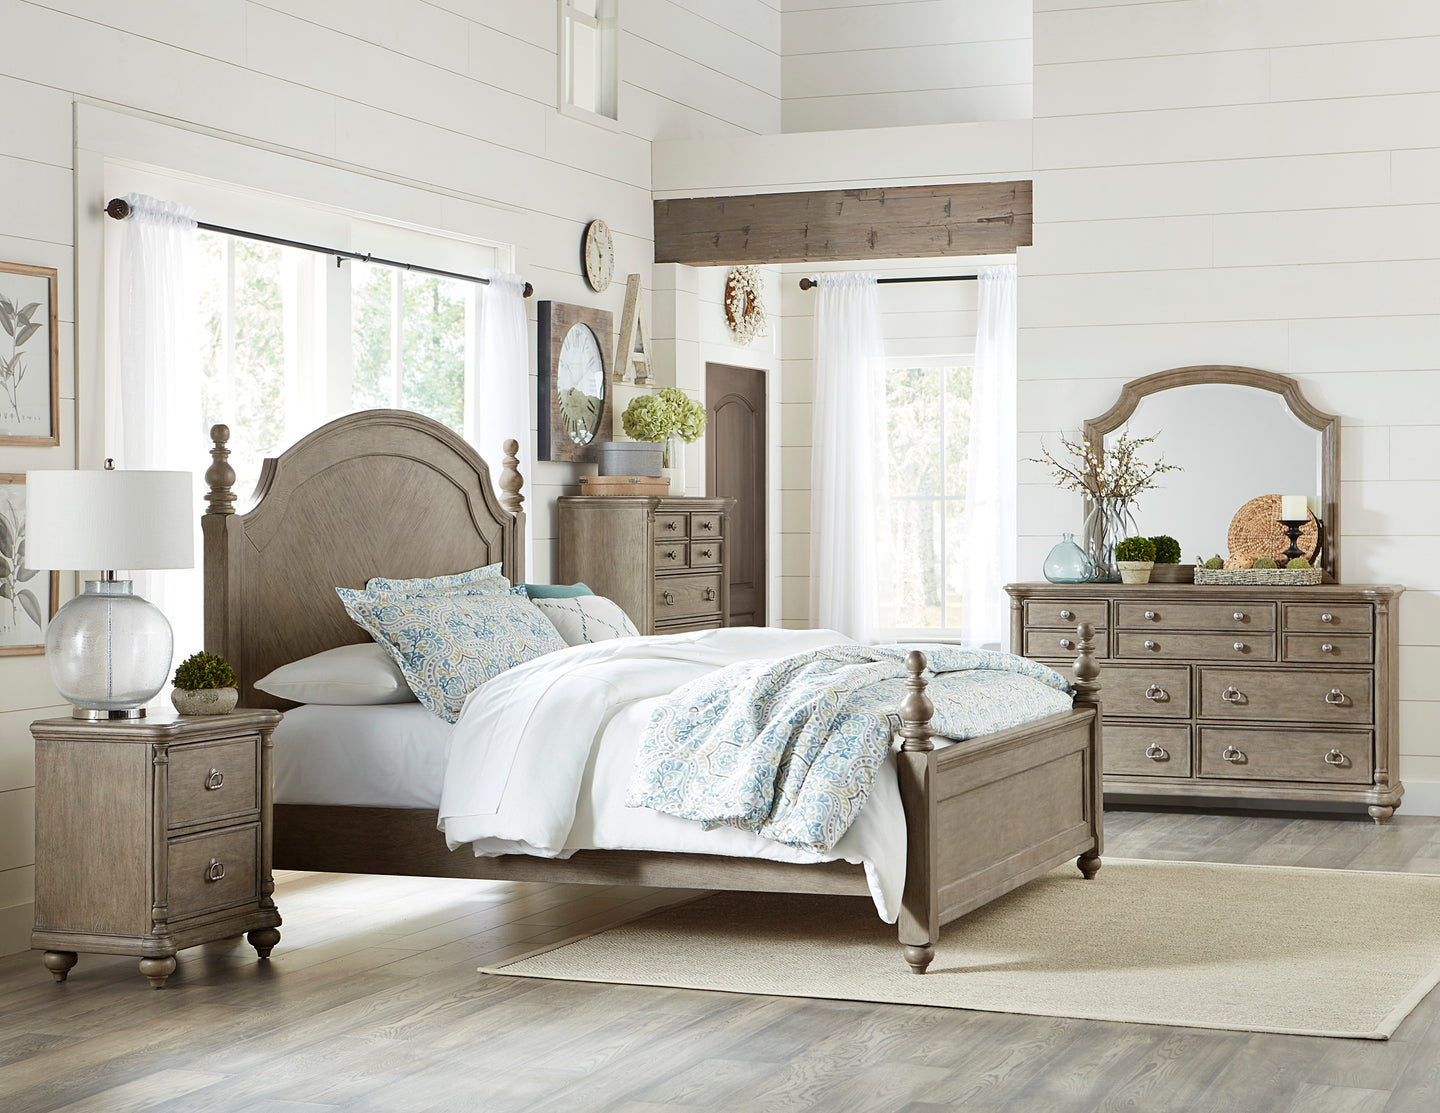 Homelegance Grayling Downs Gray Wood Finish 4 Piece Queen Bedroom Set